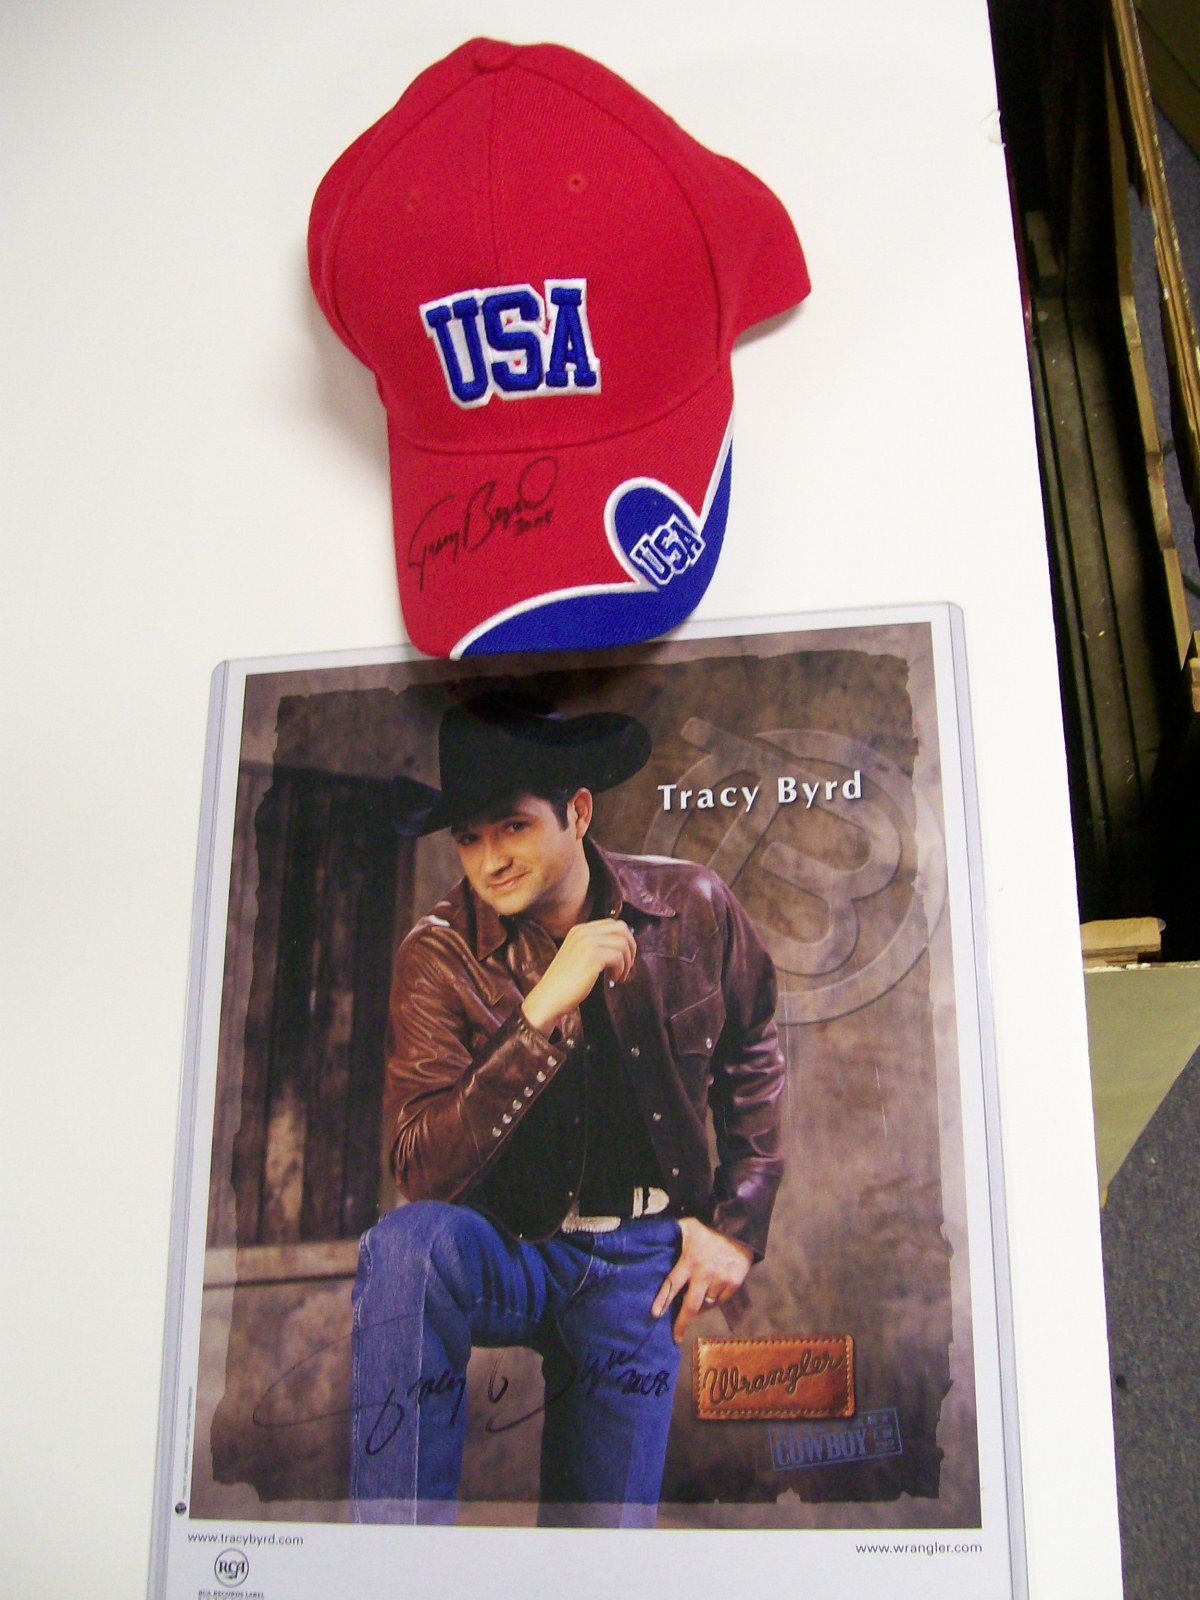 Tracy Byrd Autographed Color Photo & USA Ball Cap